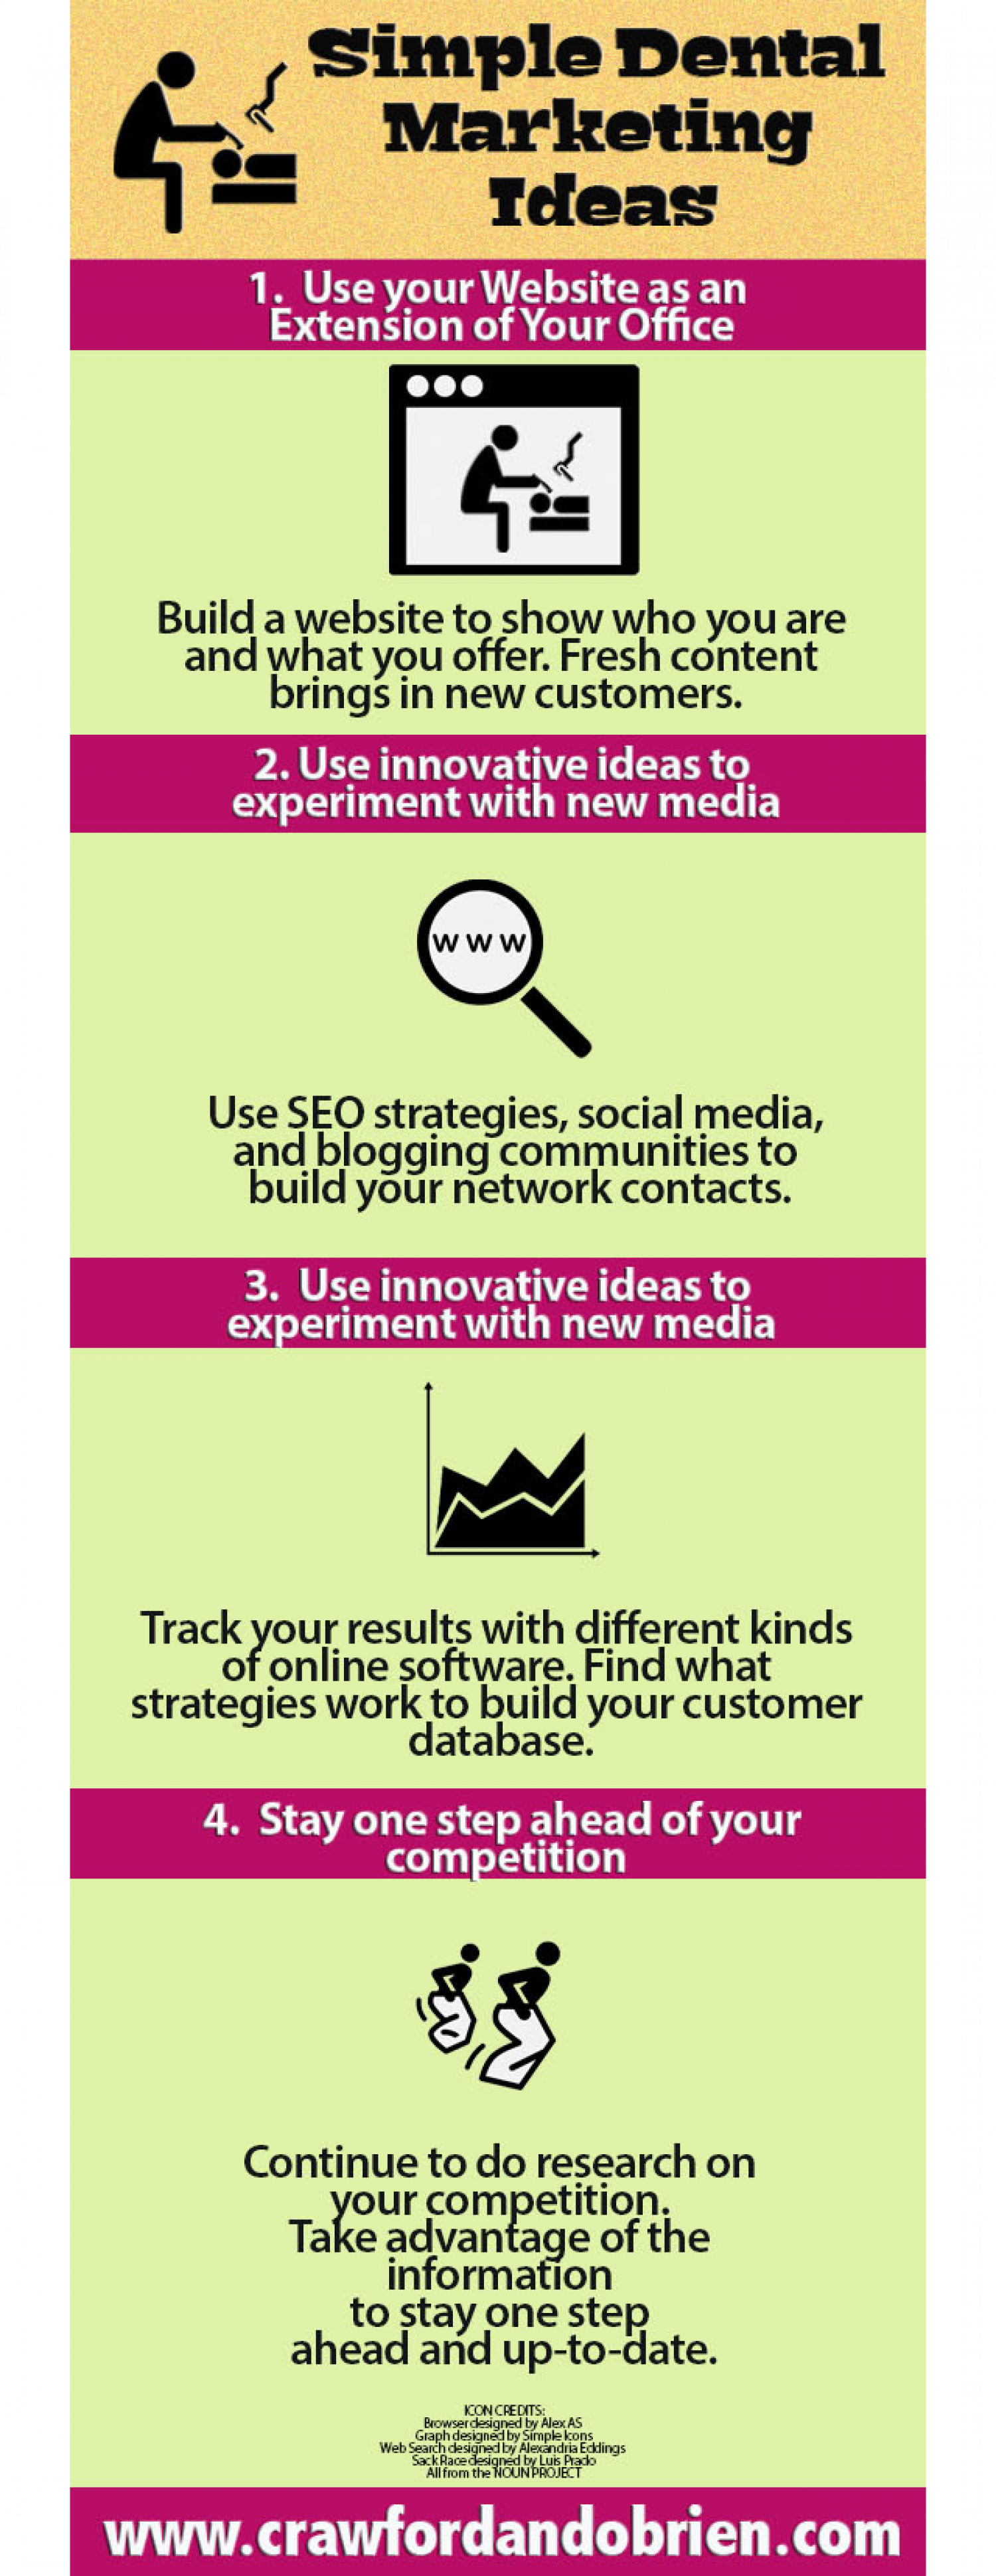 Simple Dental Marketing Ideas Infographic